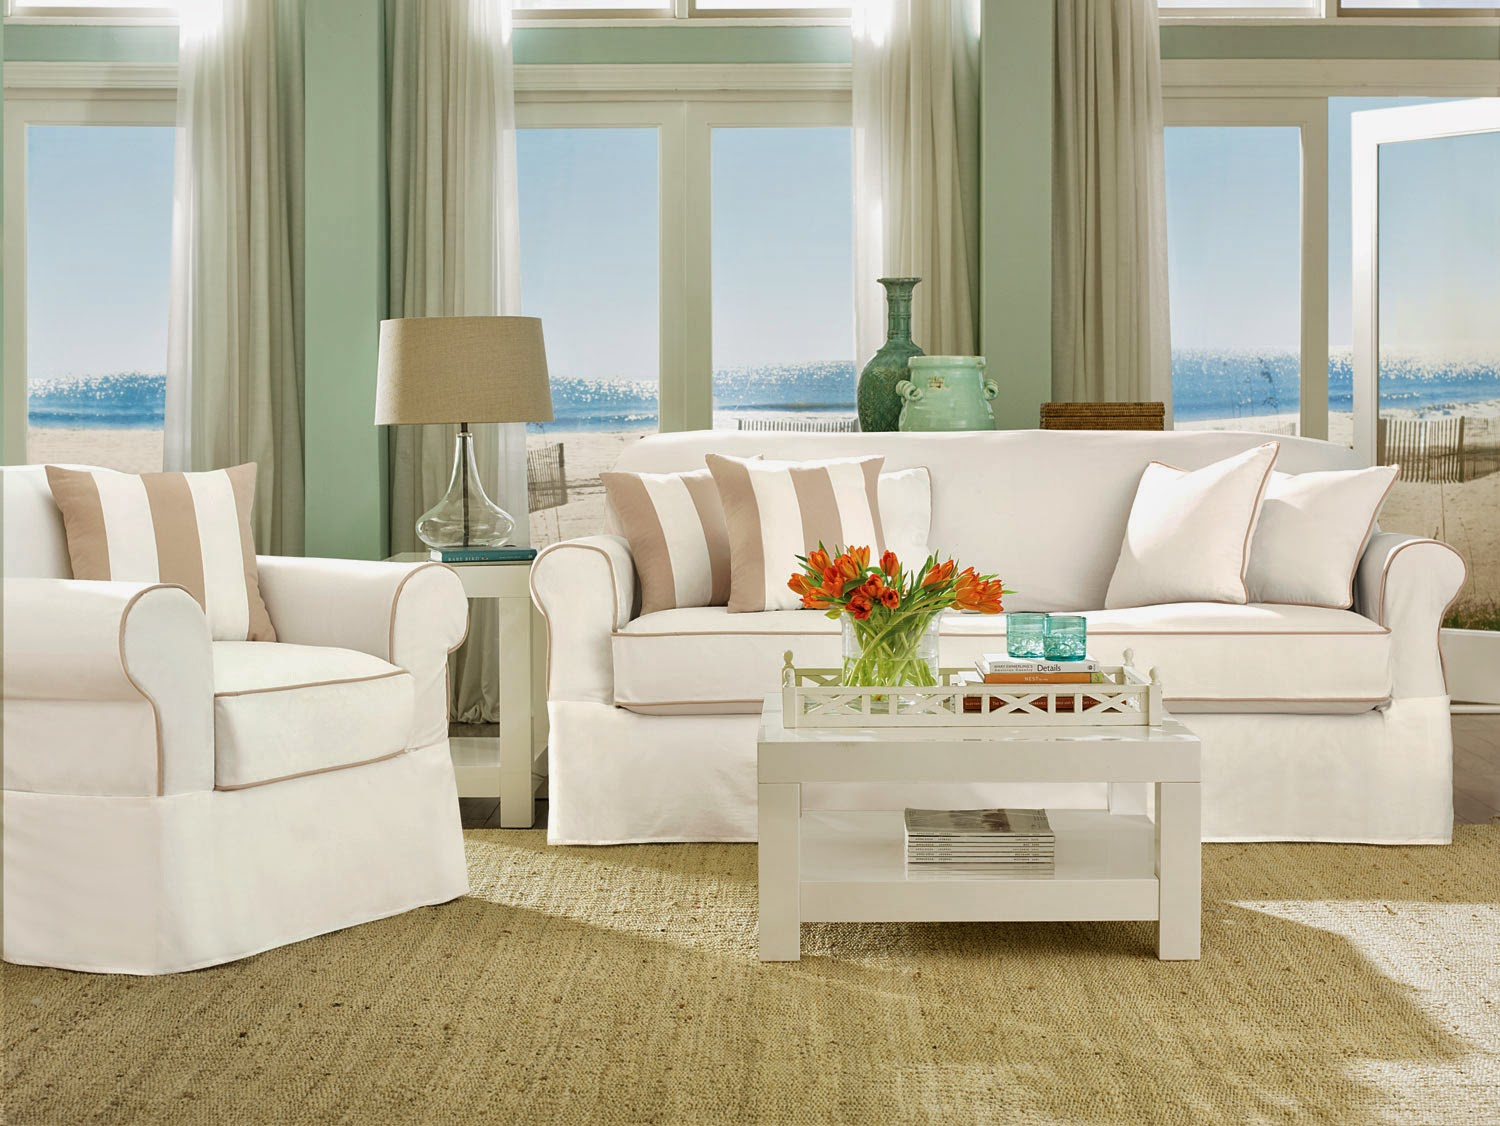 amazing sofa with white surefit cover on wooden floor which matched olive wall for living room decor ideas